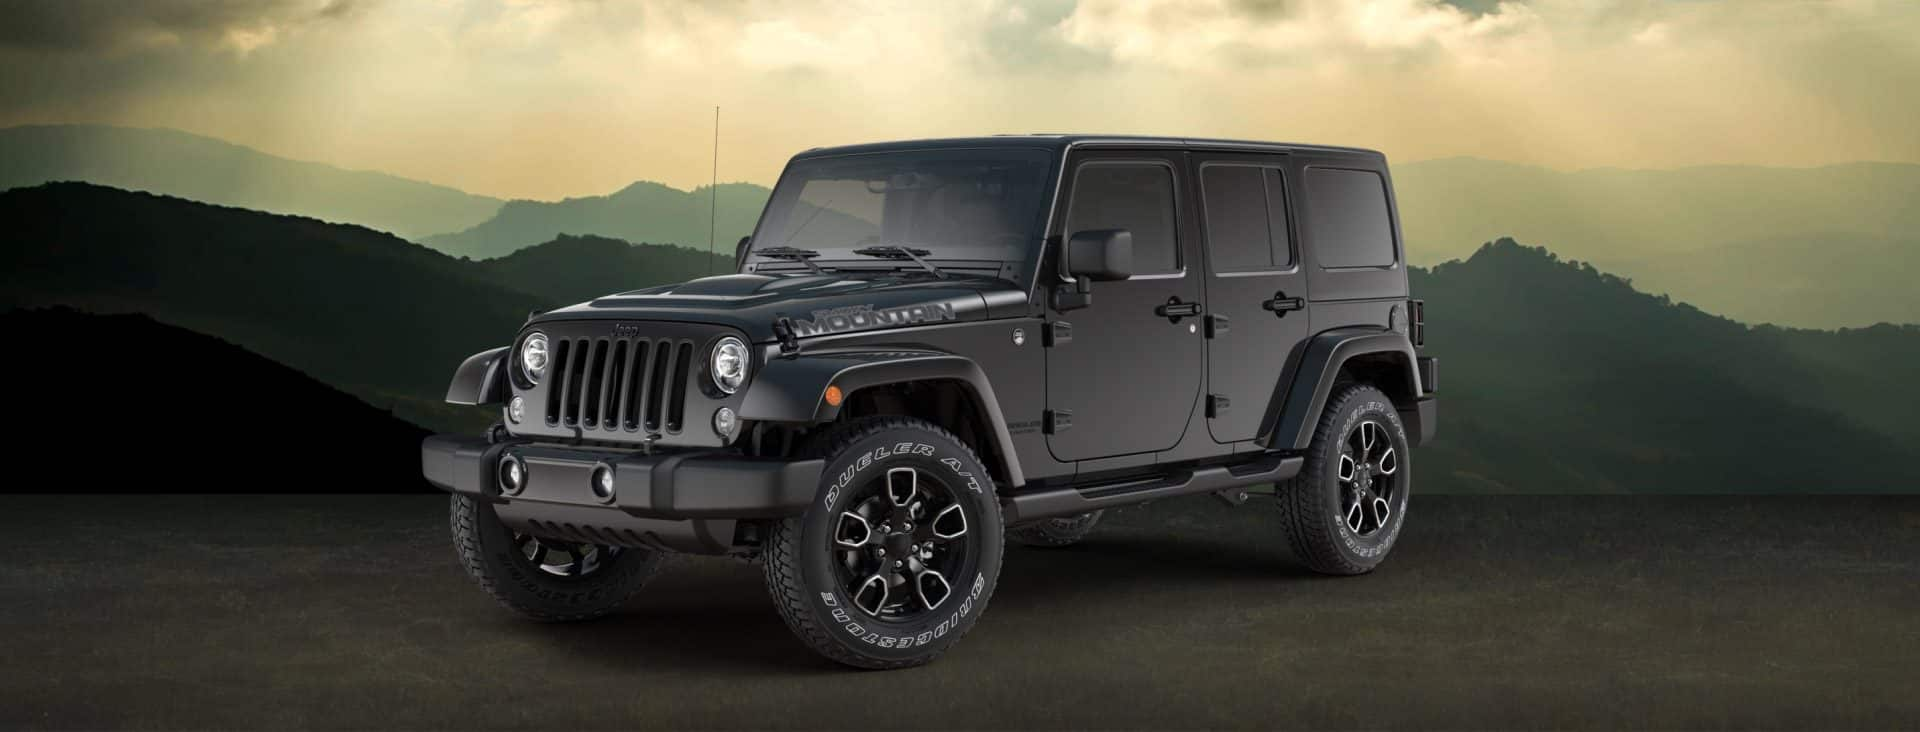 2017 jeep wrangler and wrangler unlimited smoky mountain